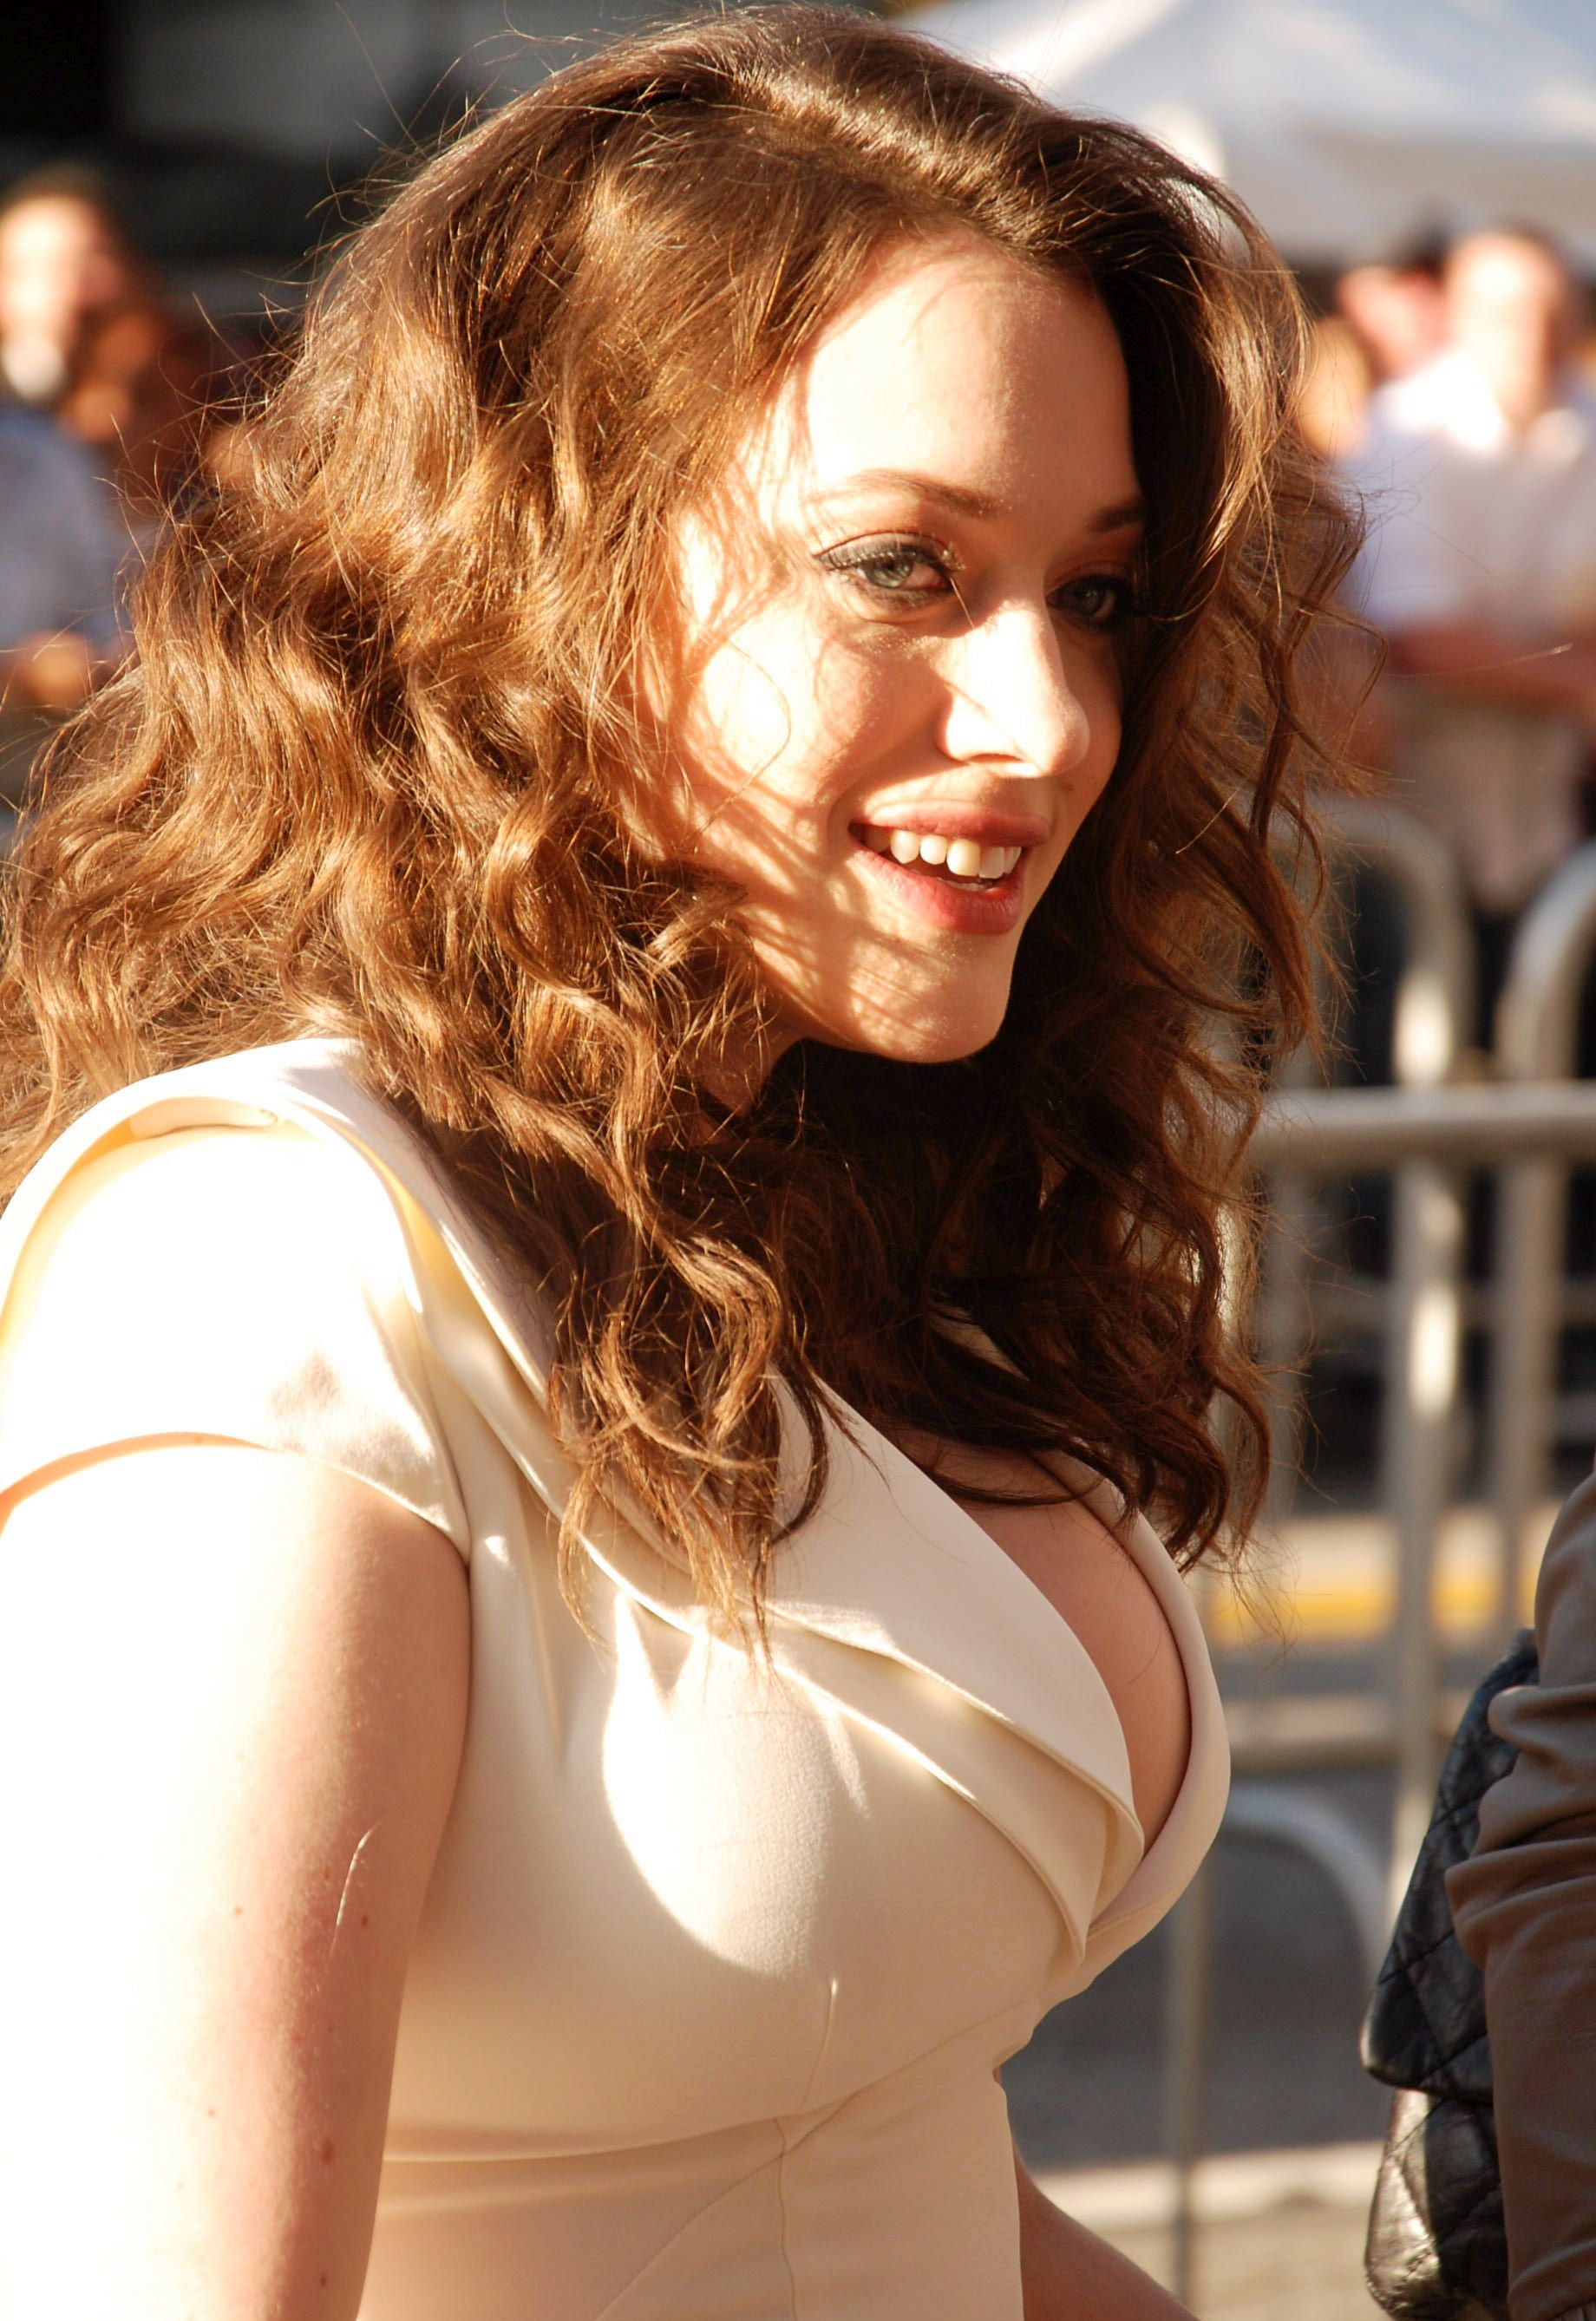 Kat Dennings Hometown Philadelphia Pa Occupation Actress Background Says Shes A Billion Part Jewish And I Dont Think I Have Any Relati